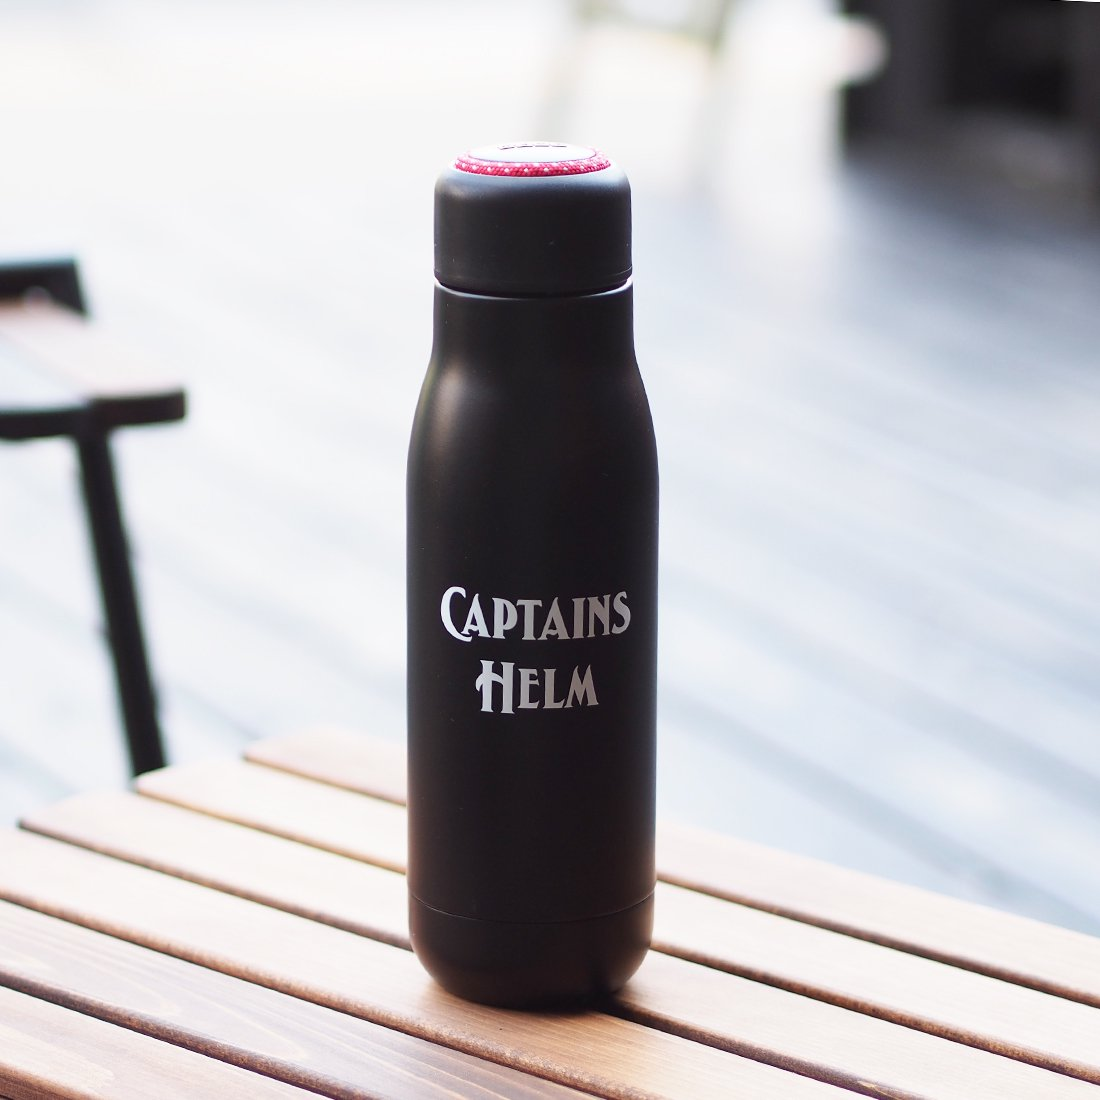 CAPTAINS HELM × ZOKU #CH LOGO BOTTLE (500ml)